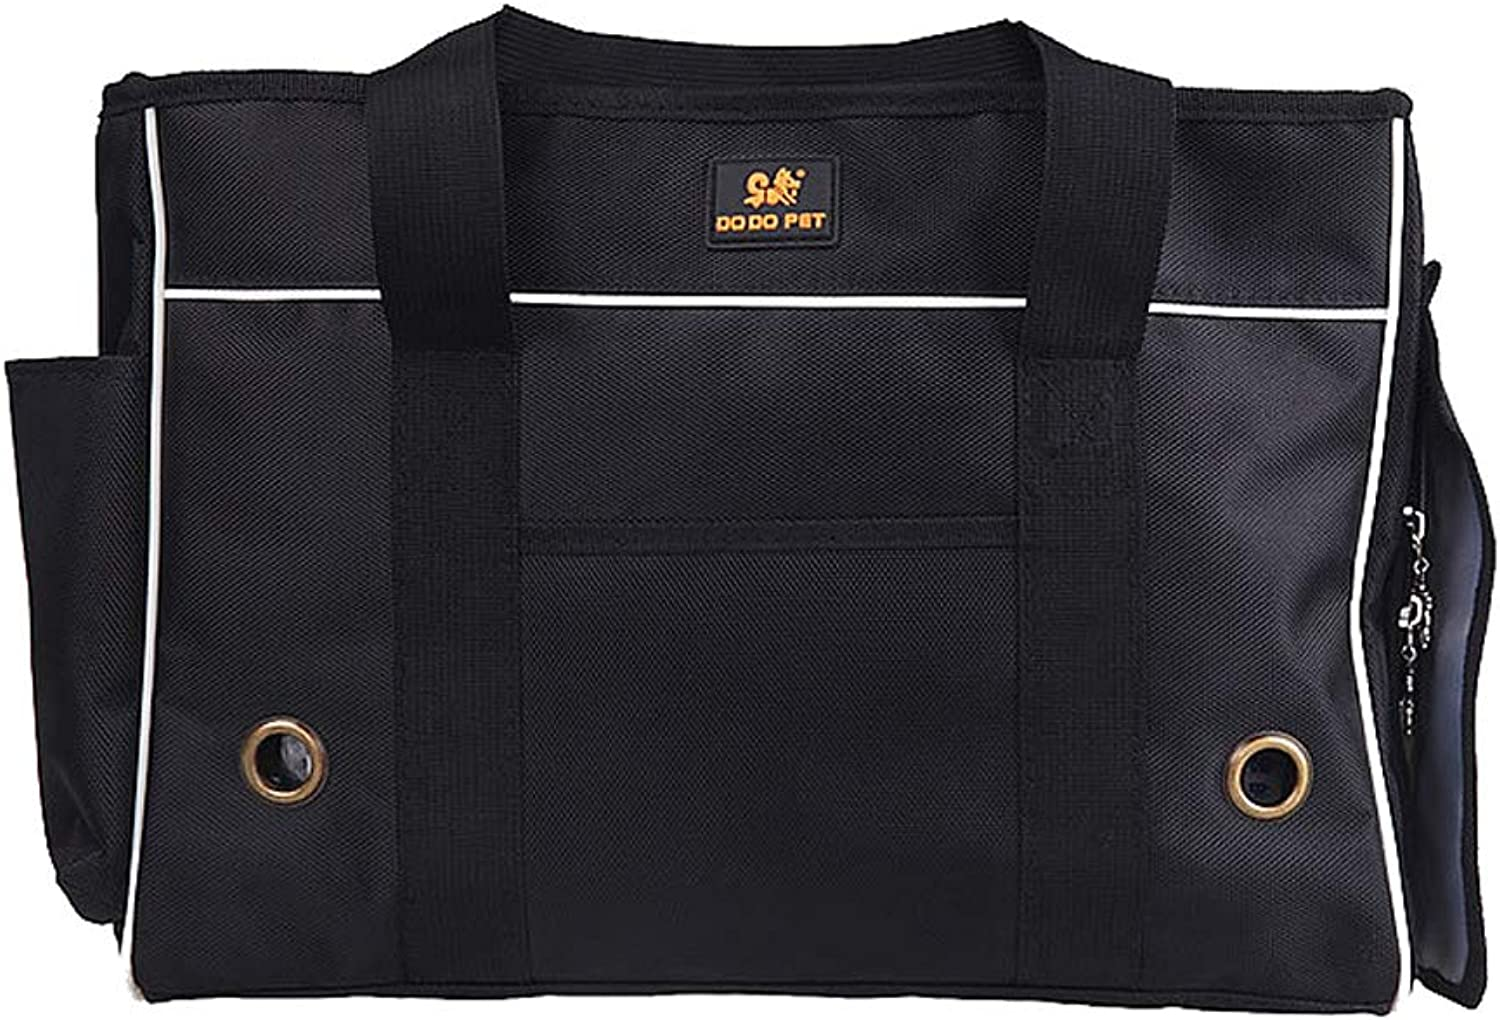 Pet Travel Carrier Sling Hands Free Pet Puppy Outdoor Bag Tote Reversible (19.3x7.9x13.8 Inches)